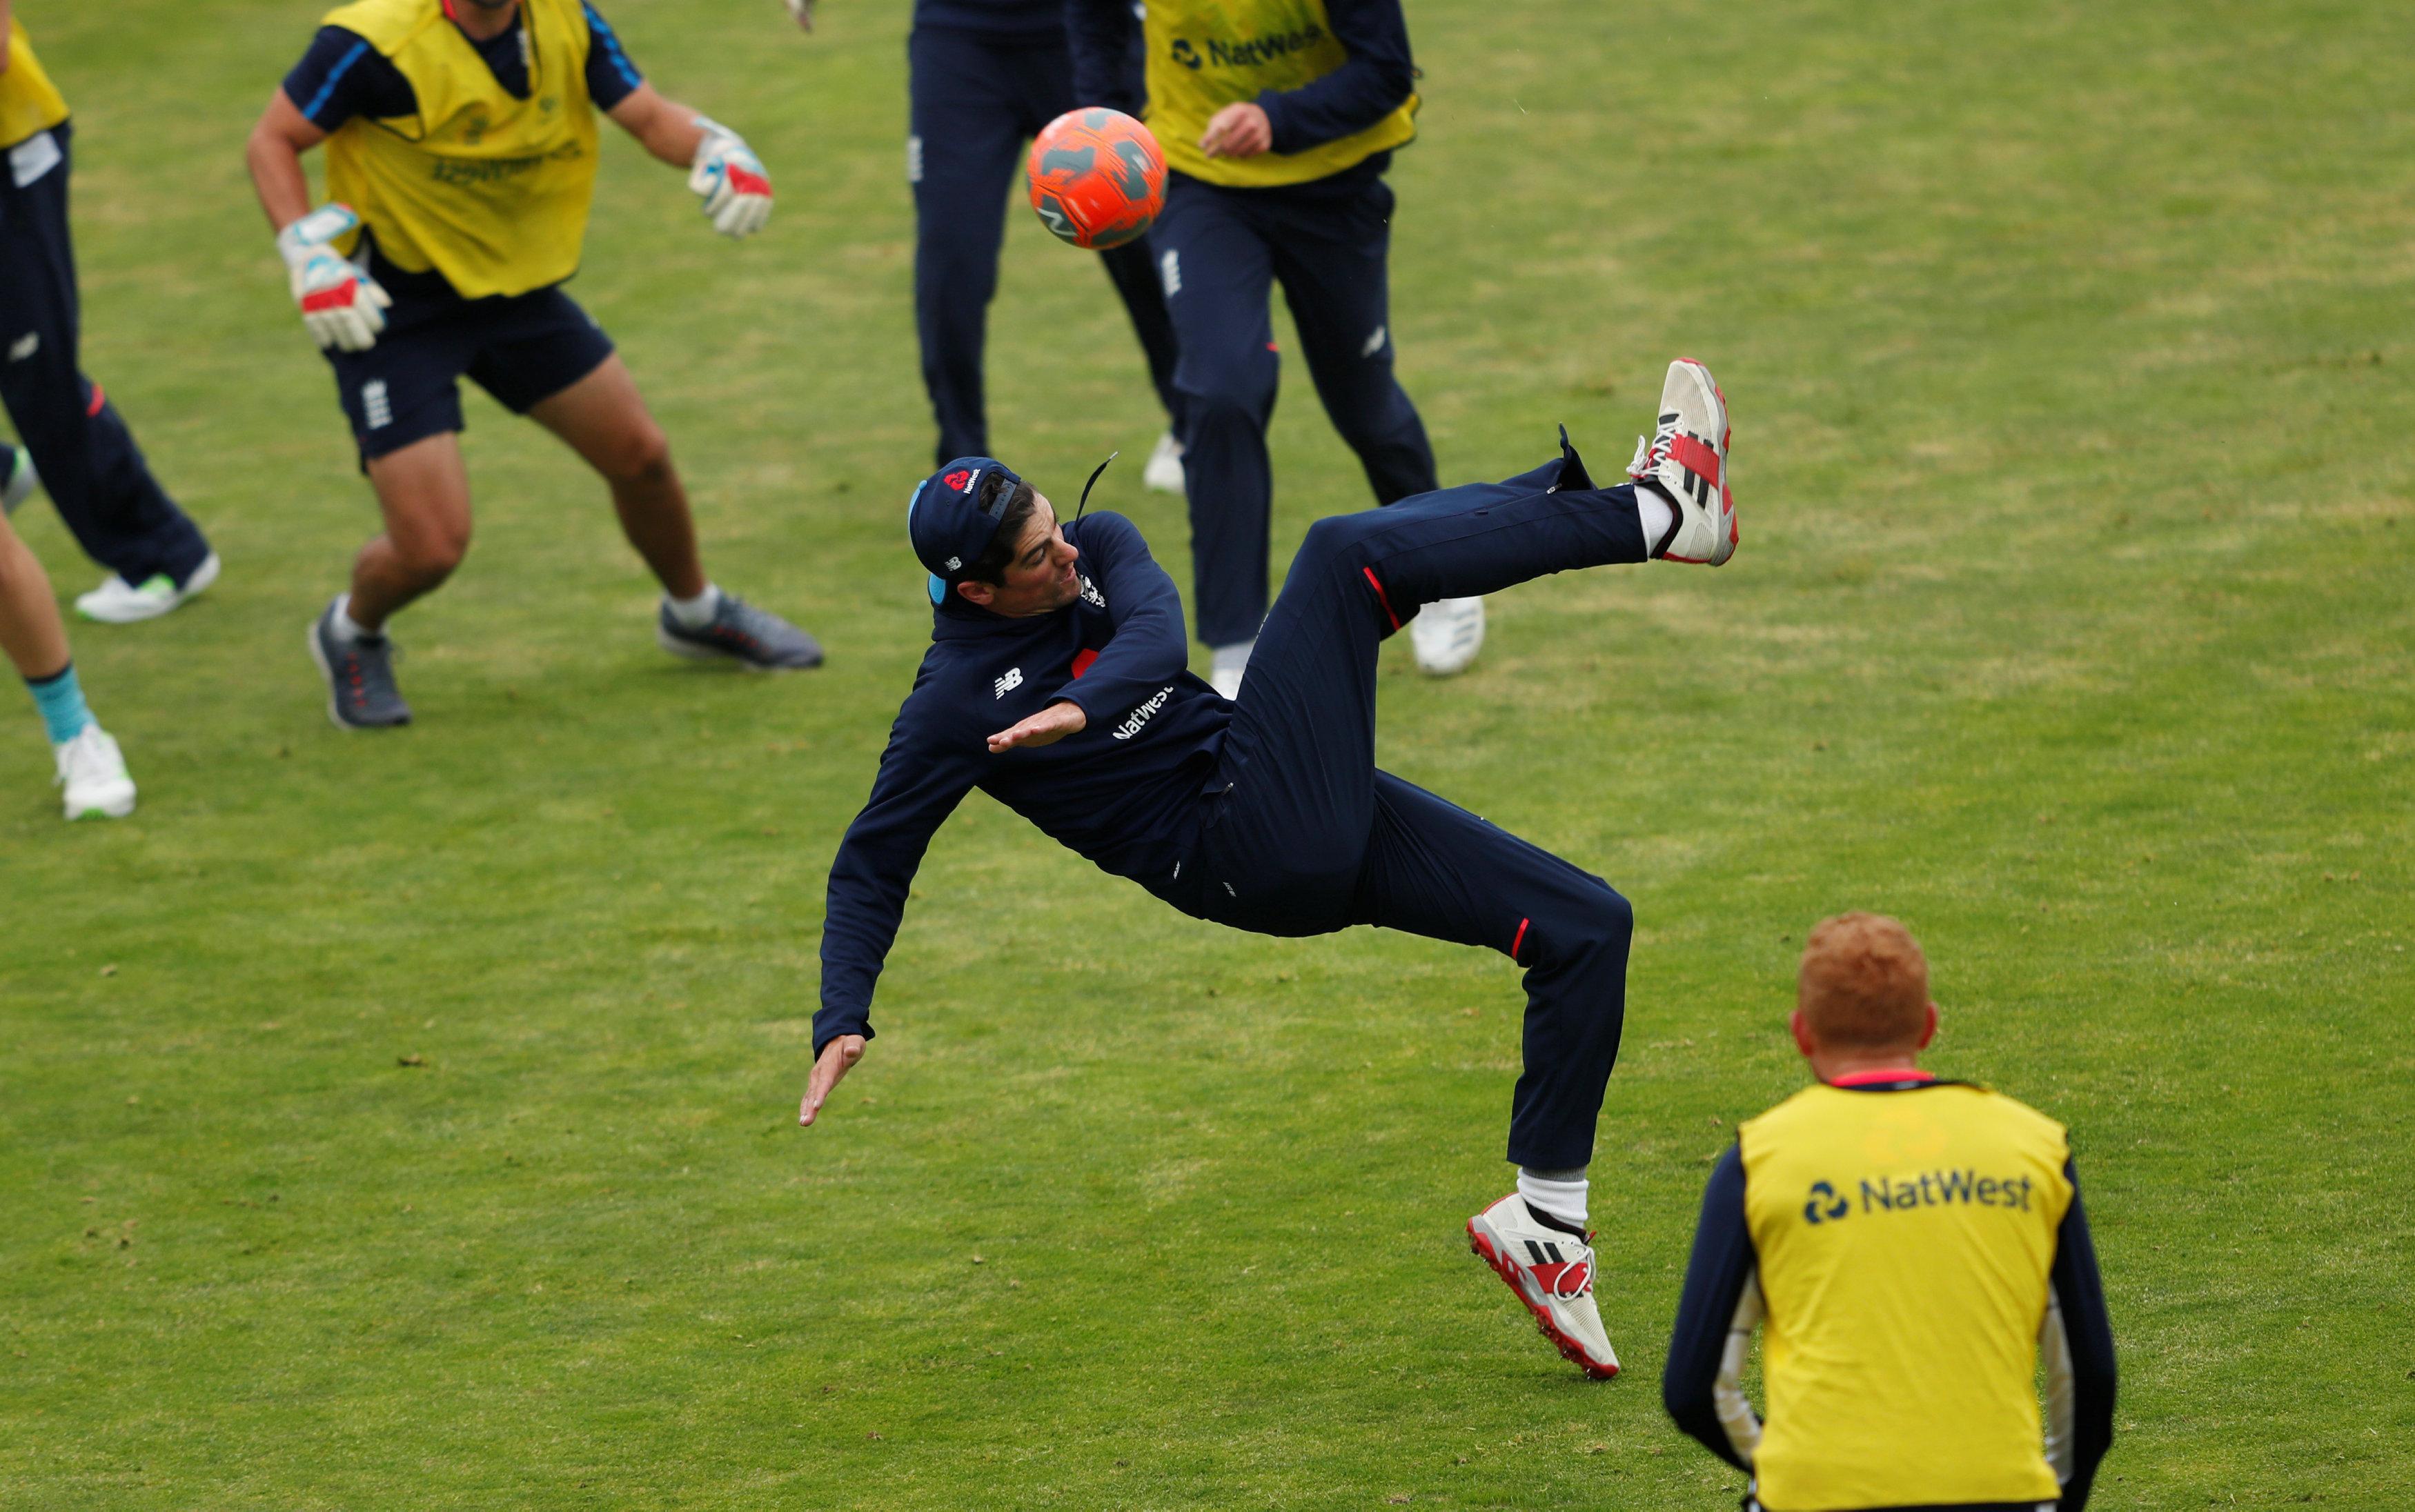 Opening batsman Alastair Cook also got in on the act in England training